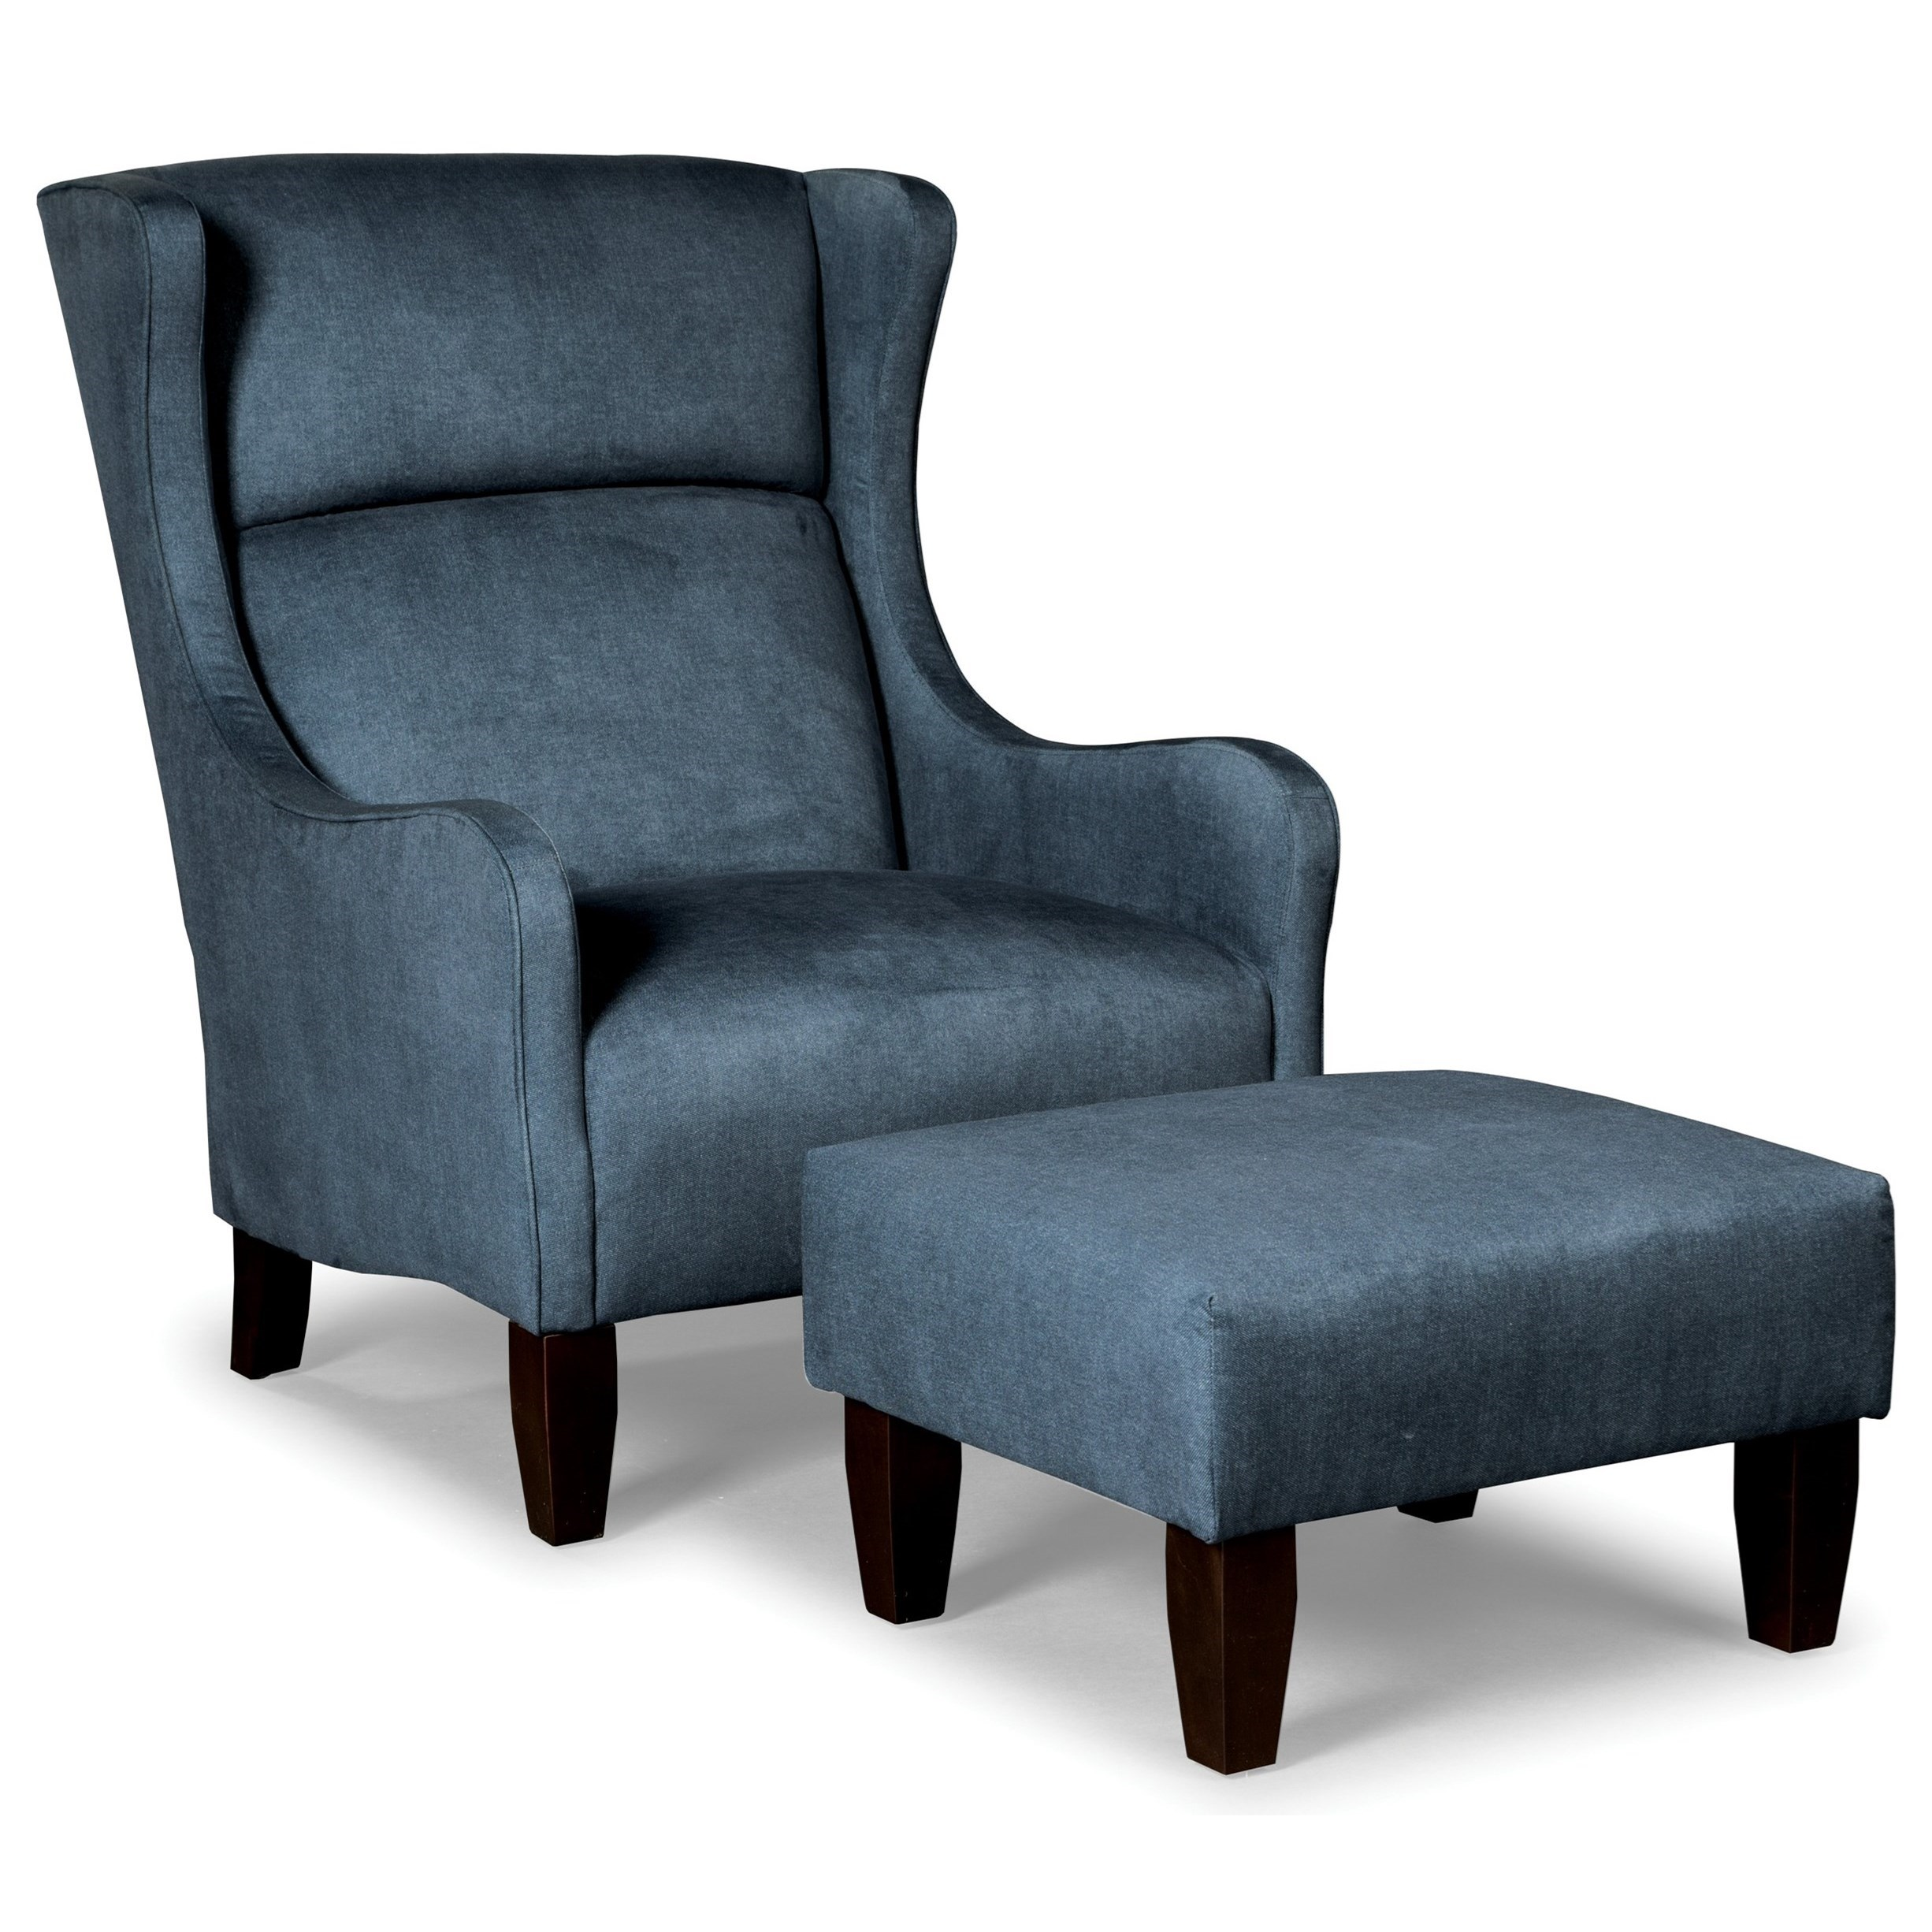 Craftmaster Accent Chairs Modern Wing Chair And Ottoman